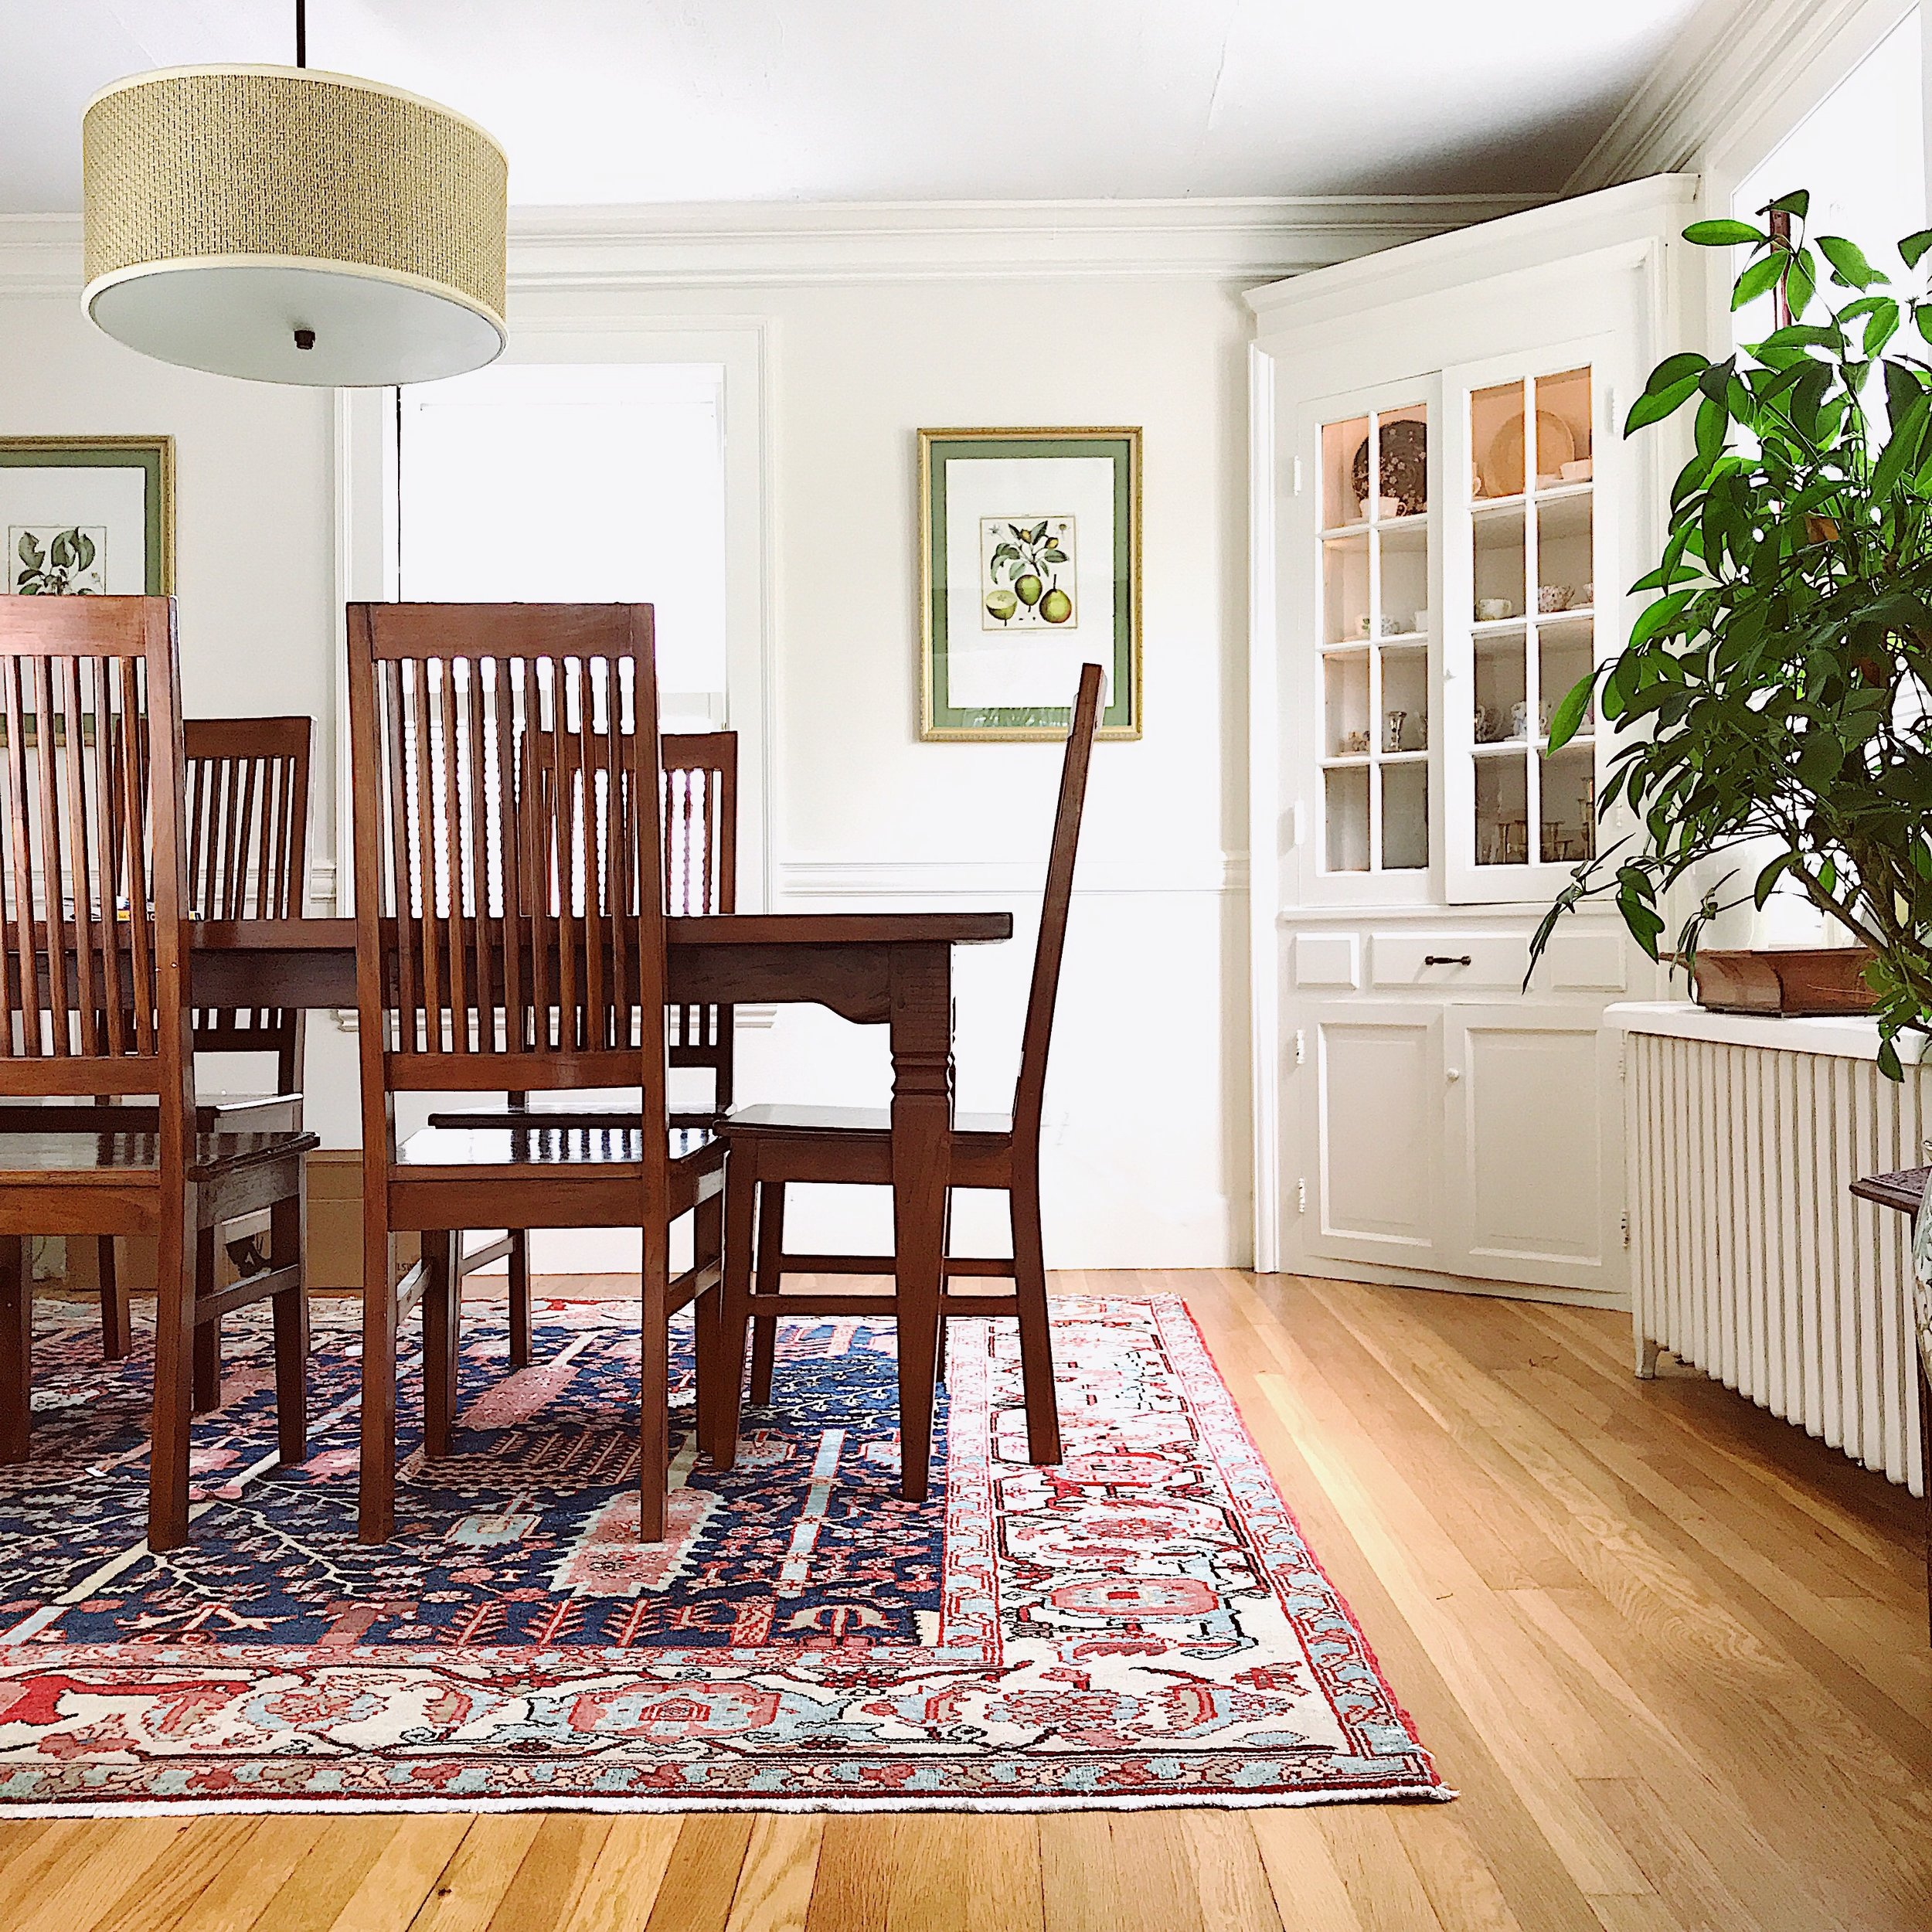 A thrifted rug and vintage botanical prints round out the estate sale finds in the dining room.